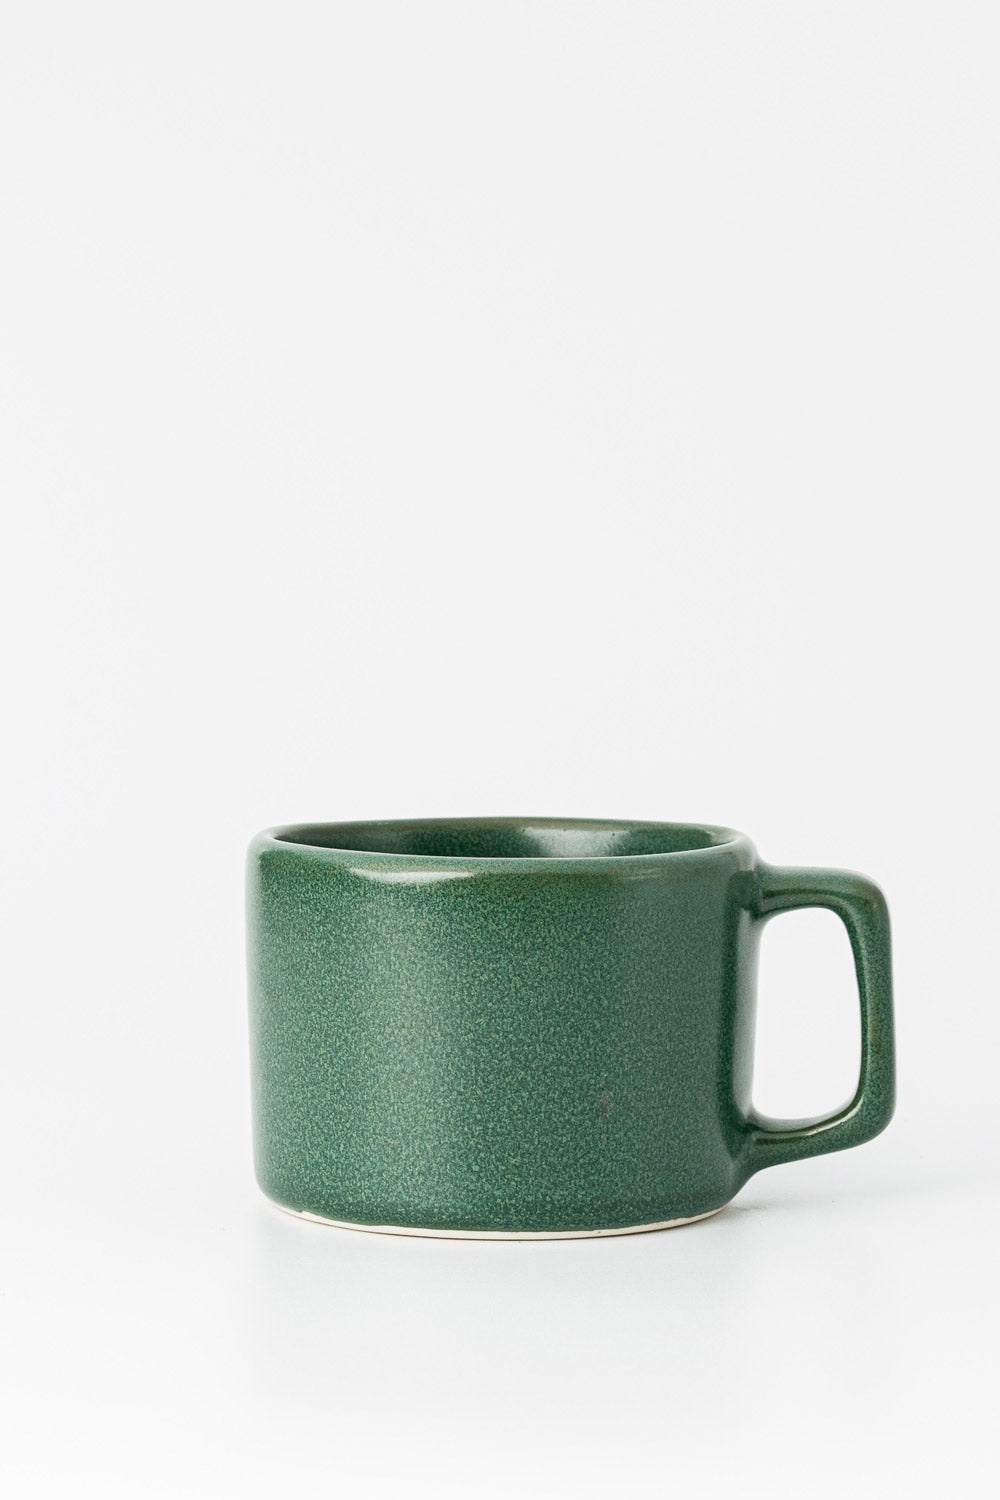 Mug Large in Fern